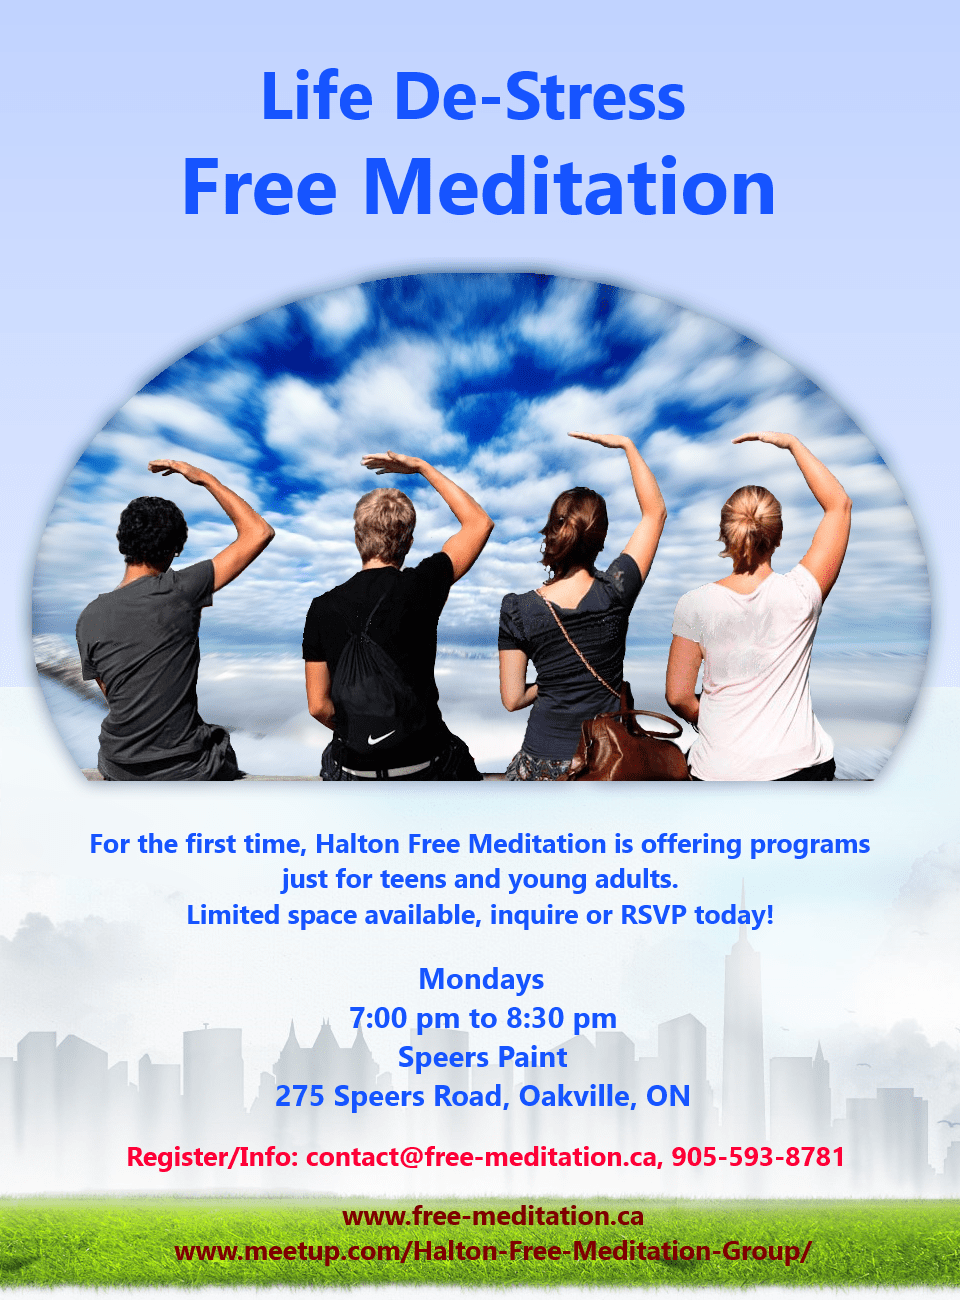 Youth Meditation Classes in Oakville  - for Students and Young Adults - Free weekly classes